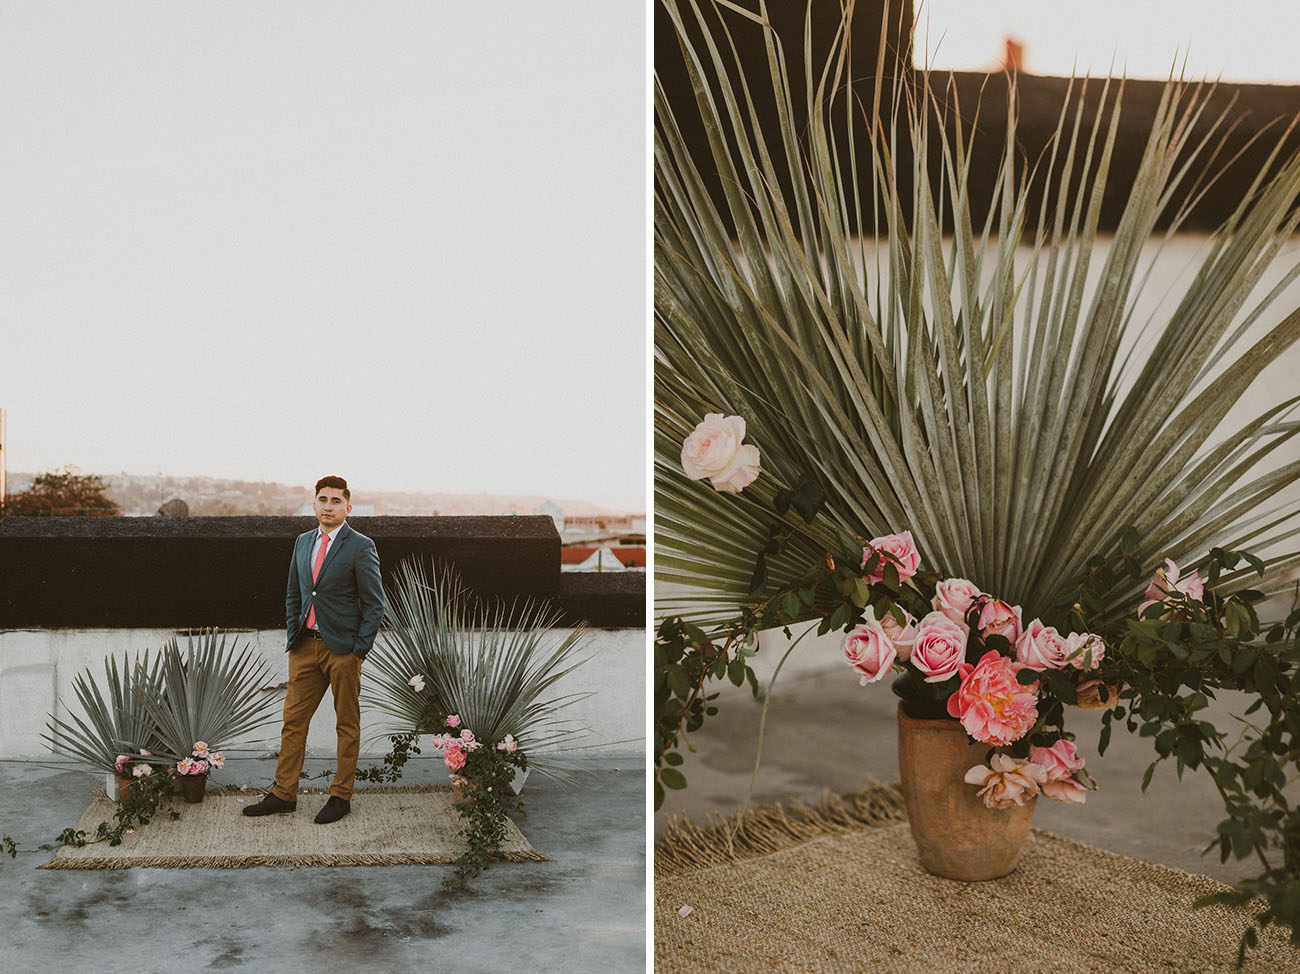 A Modern Elopement in Mexico Inspired by Luis Barragán's Bold + Bright Architecture